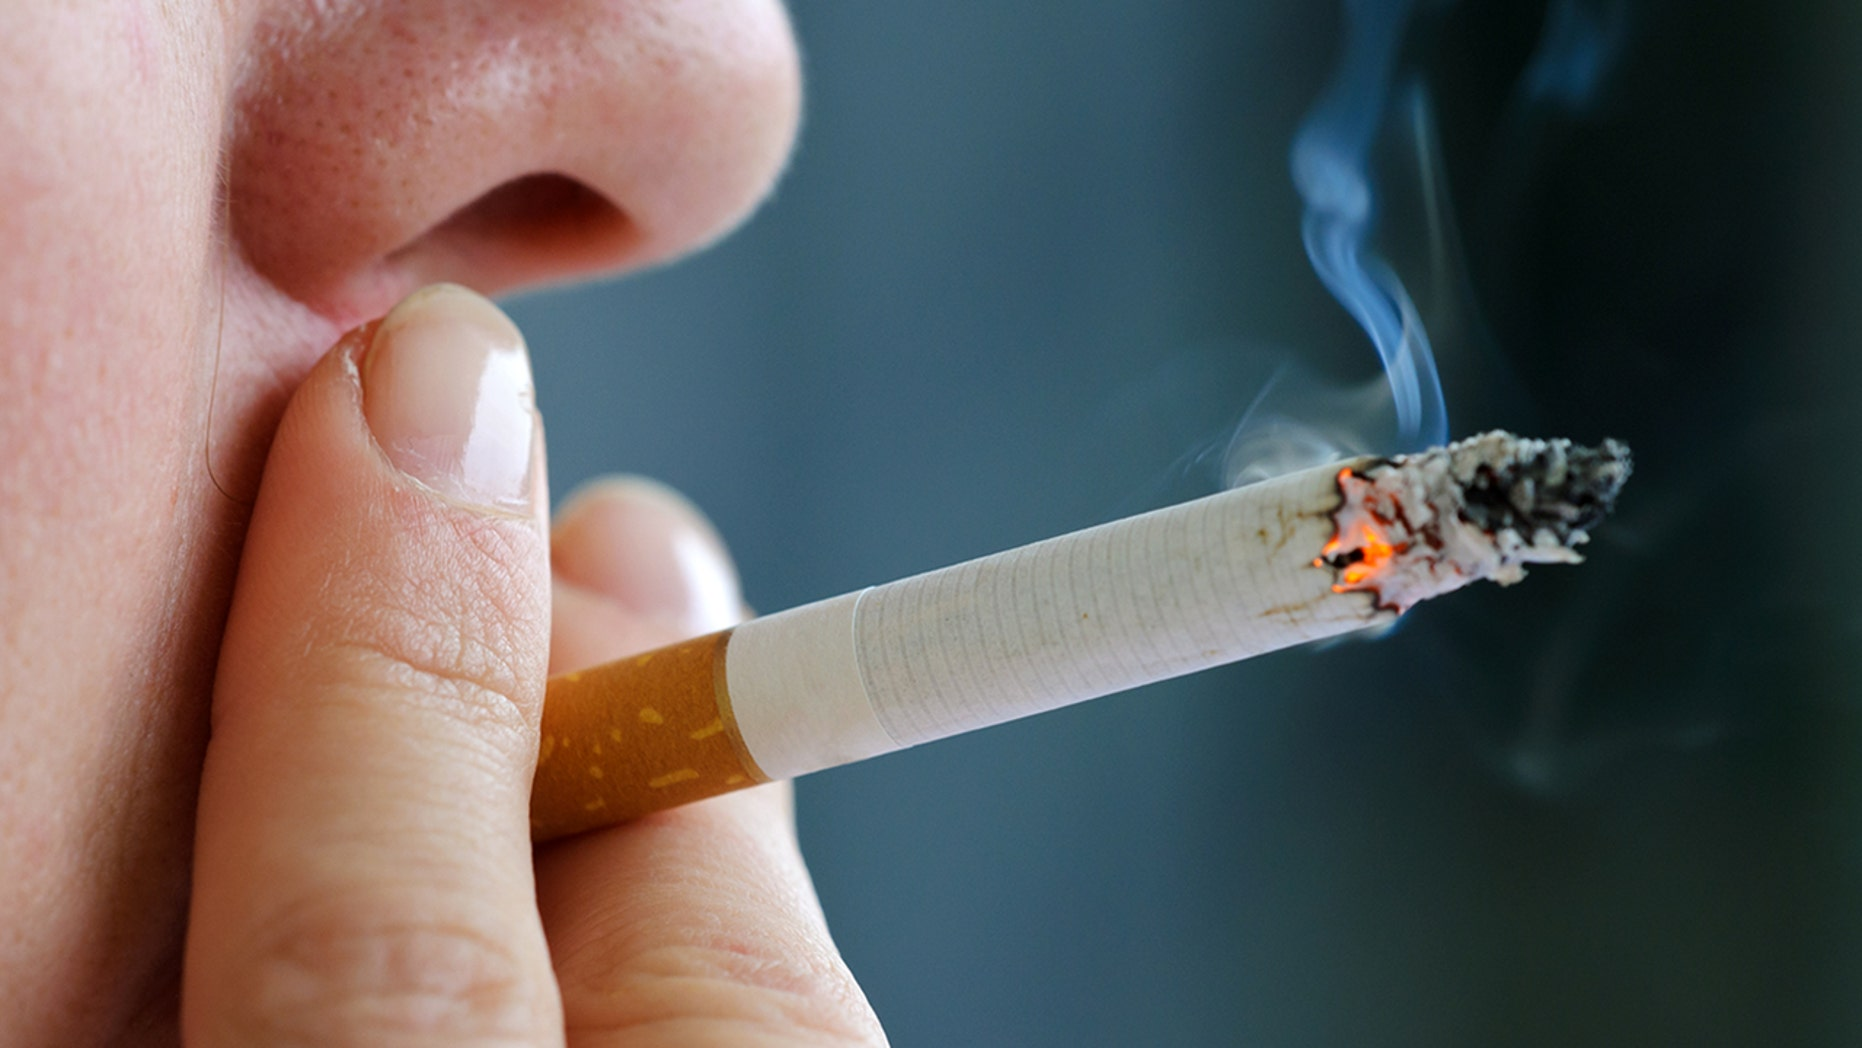 Cigarette smoking may be linked to a deadly fire in New York City, officials said.